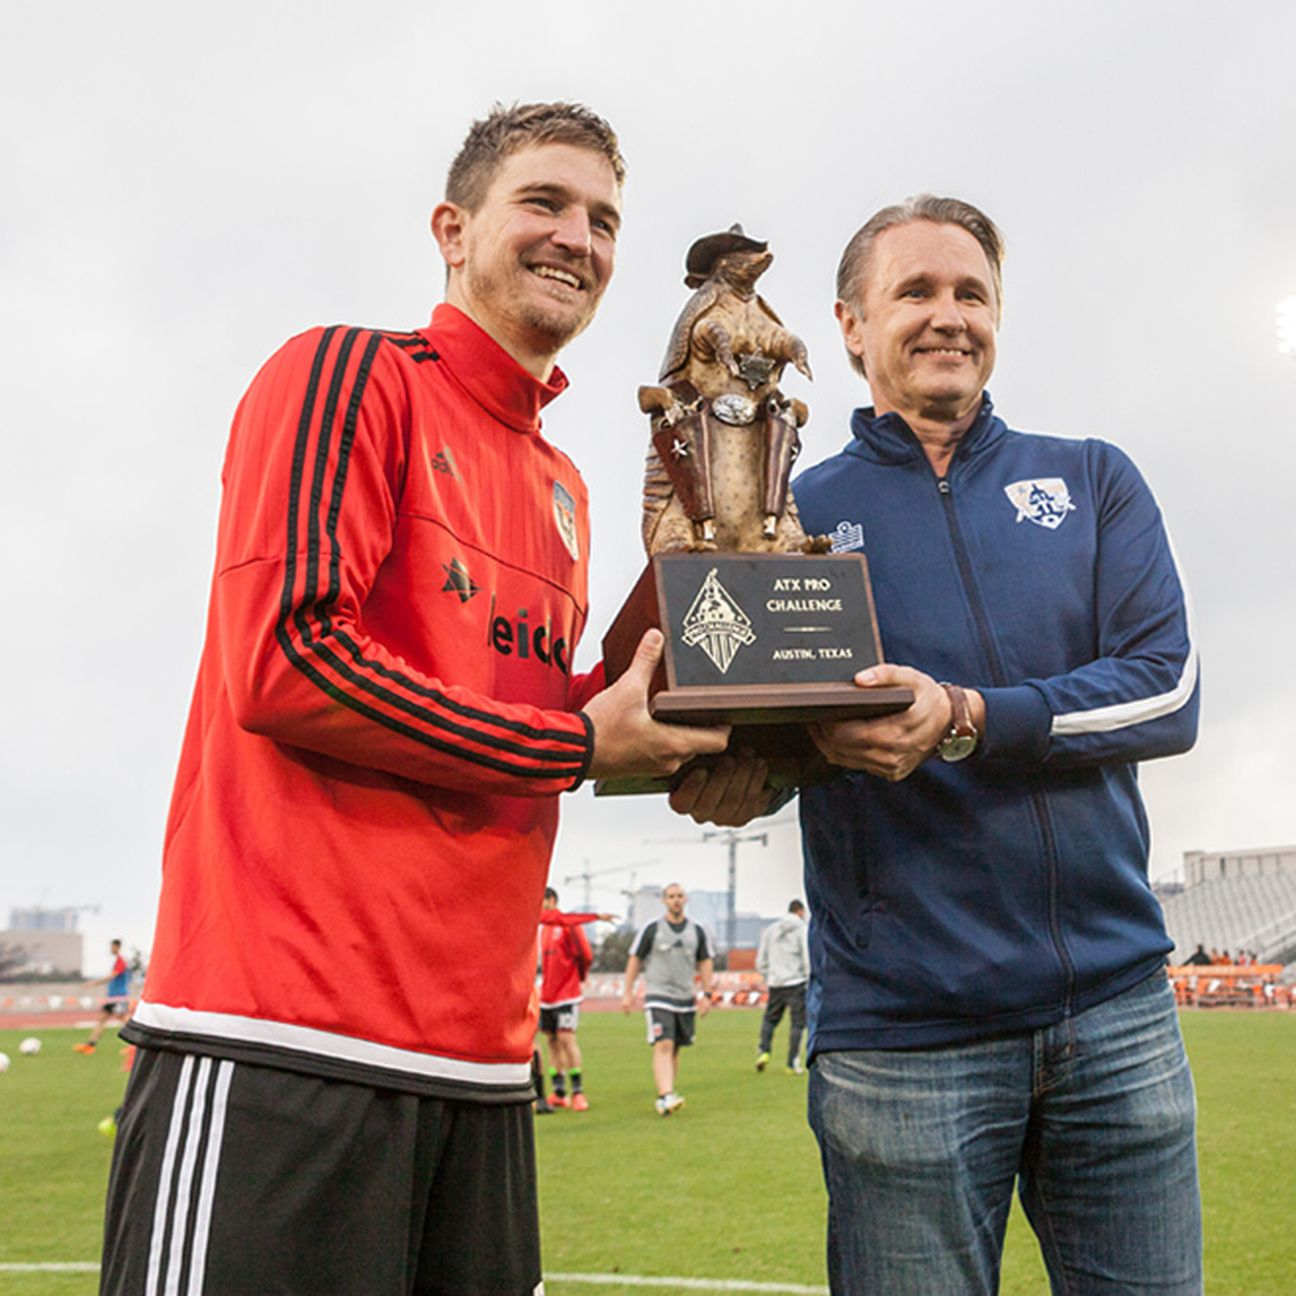 D.C. United defender Bobby Boswell, an Austin, Texas native, holds the armadillo trophy along with Austin Aztex owner and CEO Rene van de Zande.